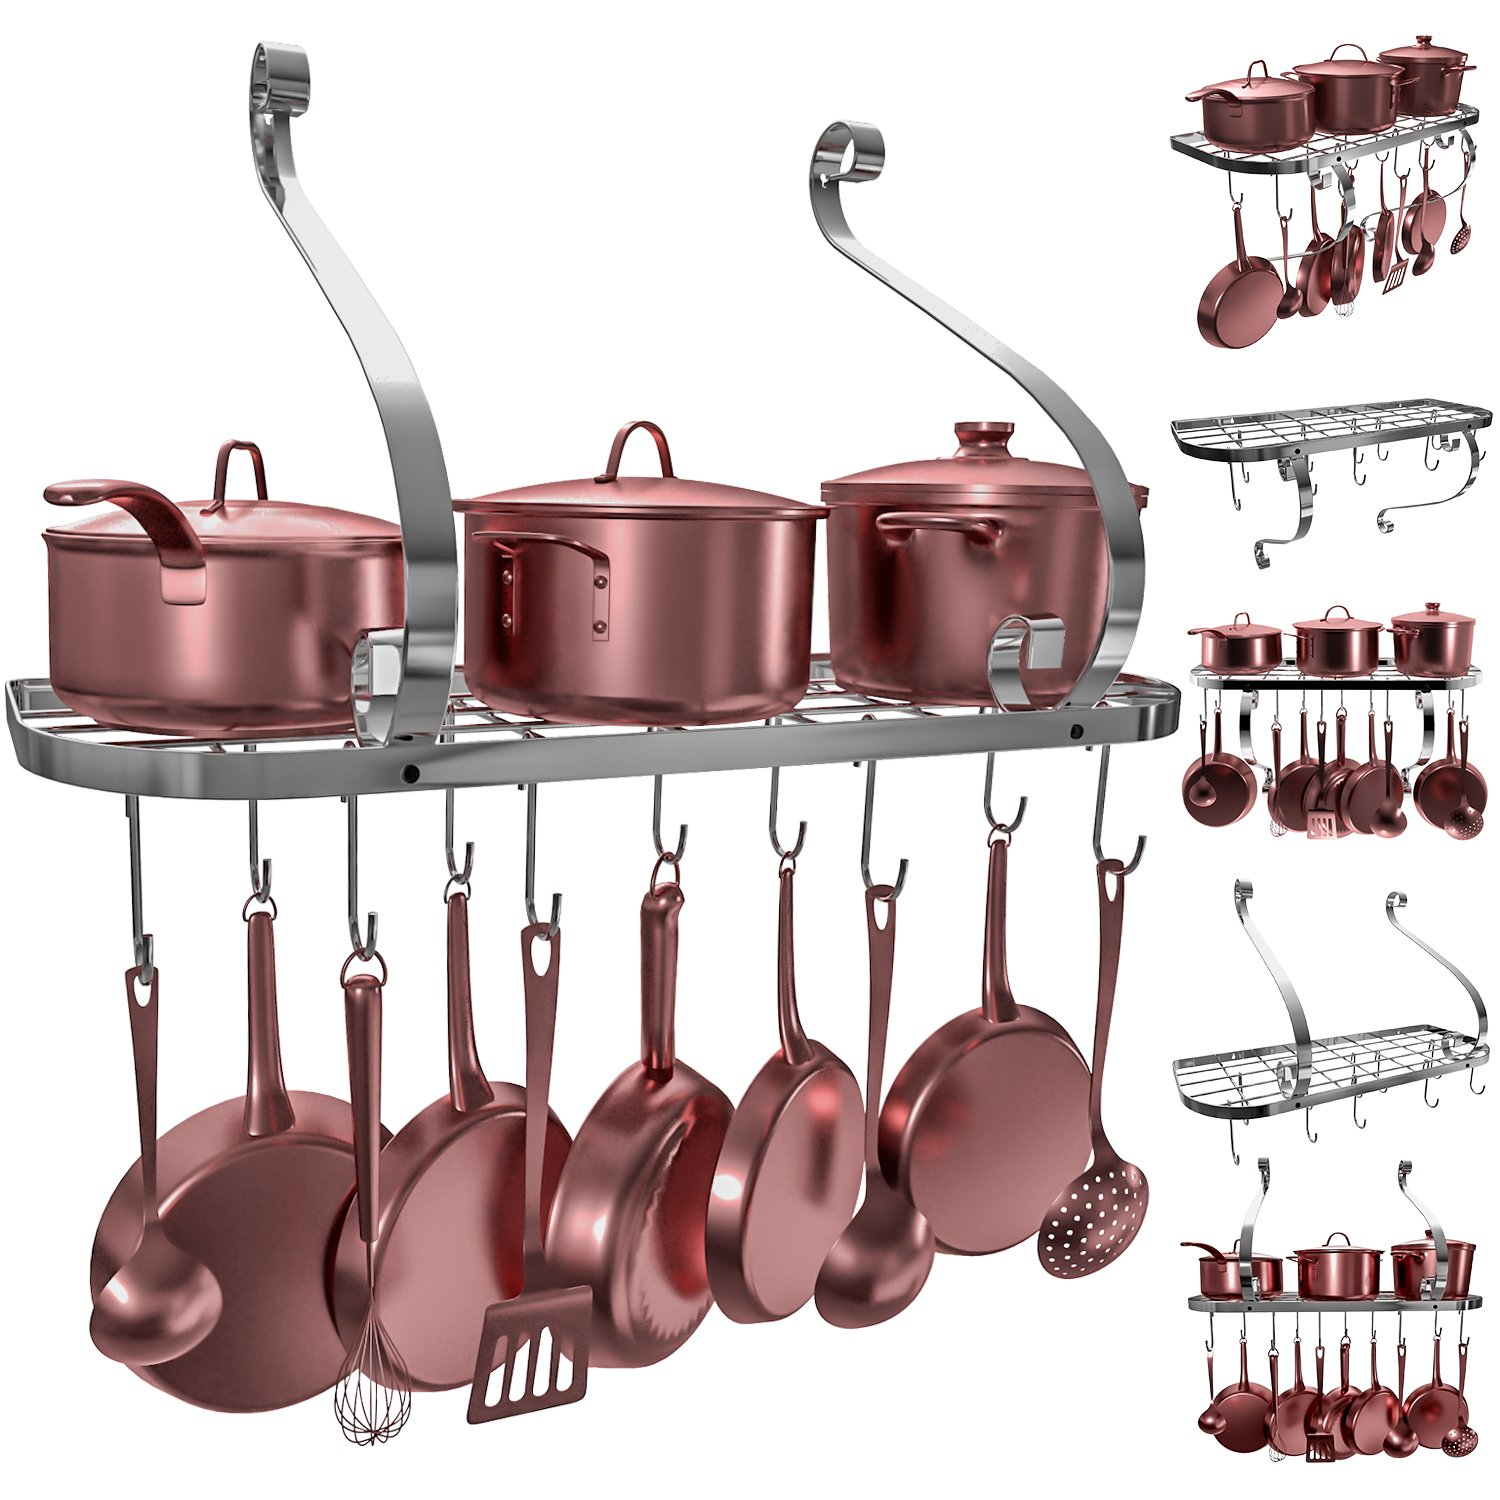 VDOMUS Square Grid Wall Mount Pot Rack, Bookshelf Rack with 10 Hooks, Kitchen Cookware, 24 by 10-inch (Sliver) by Vdomus (Image #1)